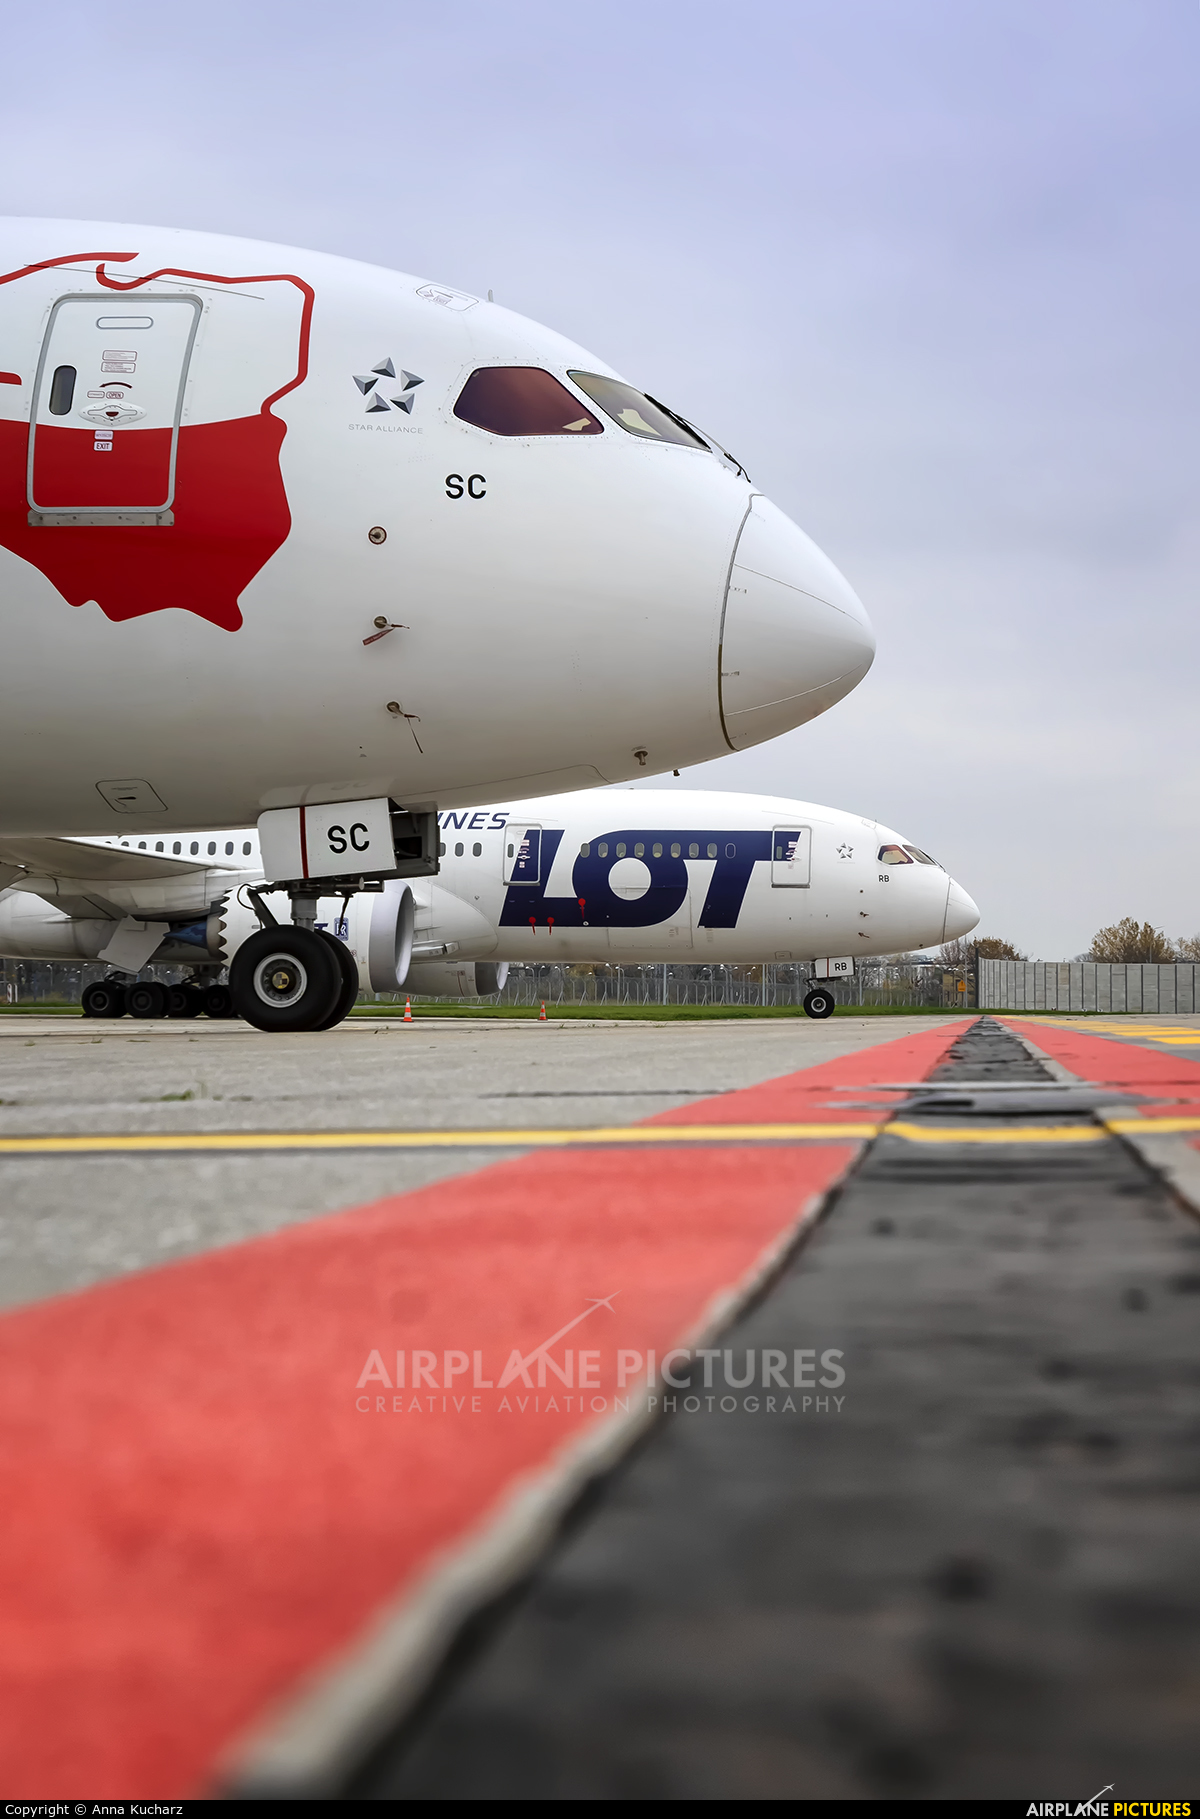 LOT - Polish Airlines SP-LSC aircraft at Warsaw - Frederic Chopin